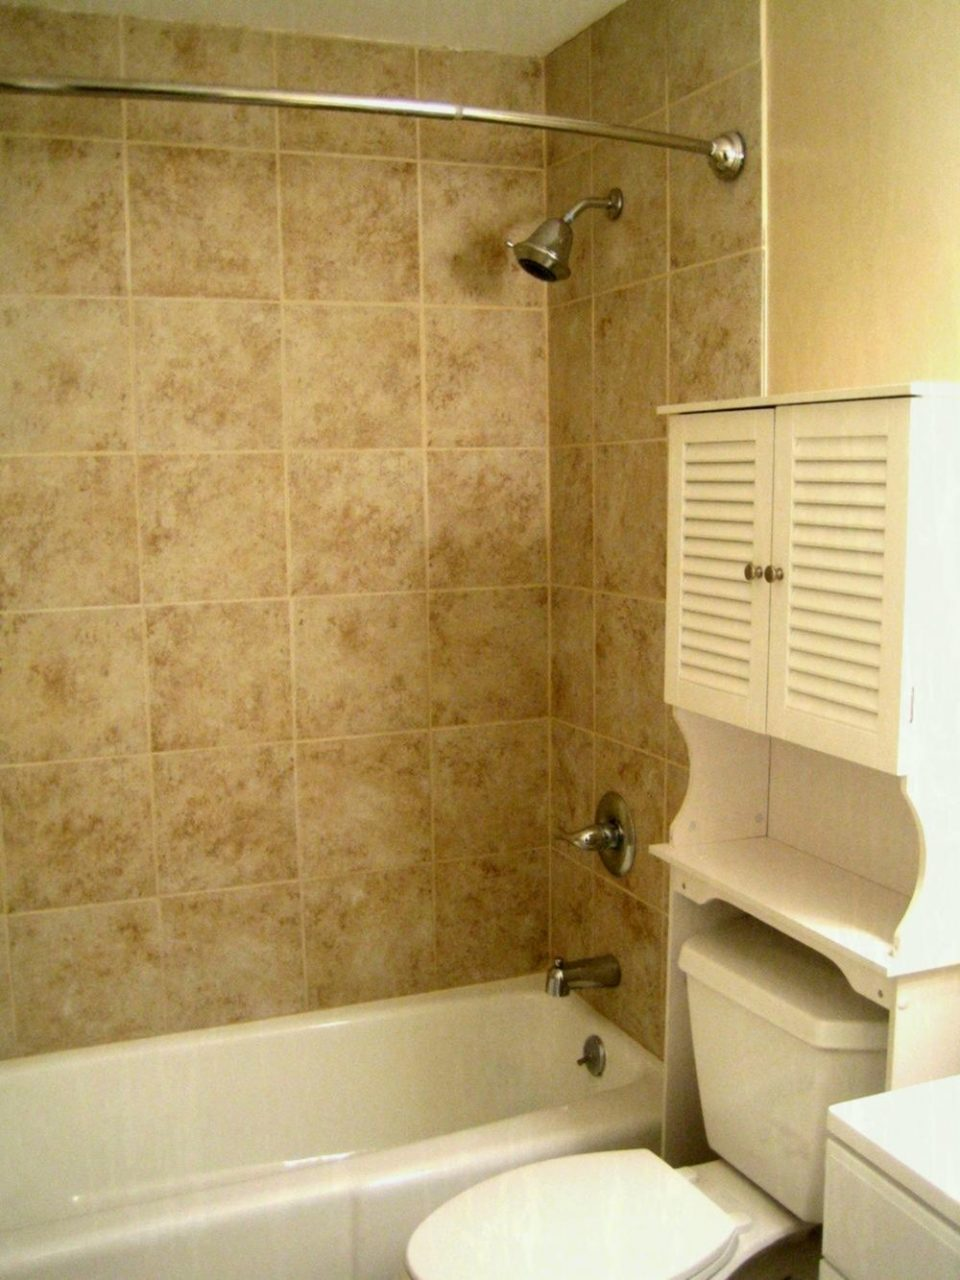 Remodel Your Bathroom With Mv Today Rental Properties I Development